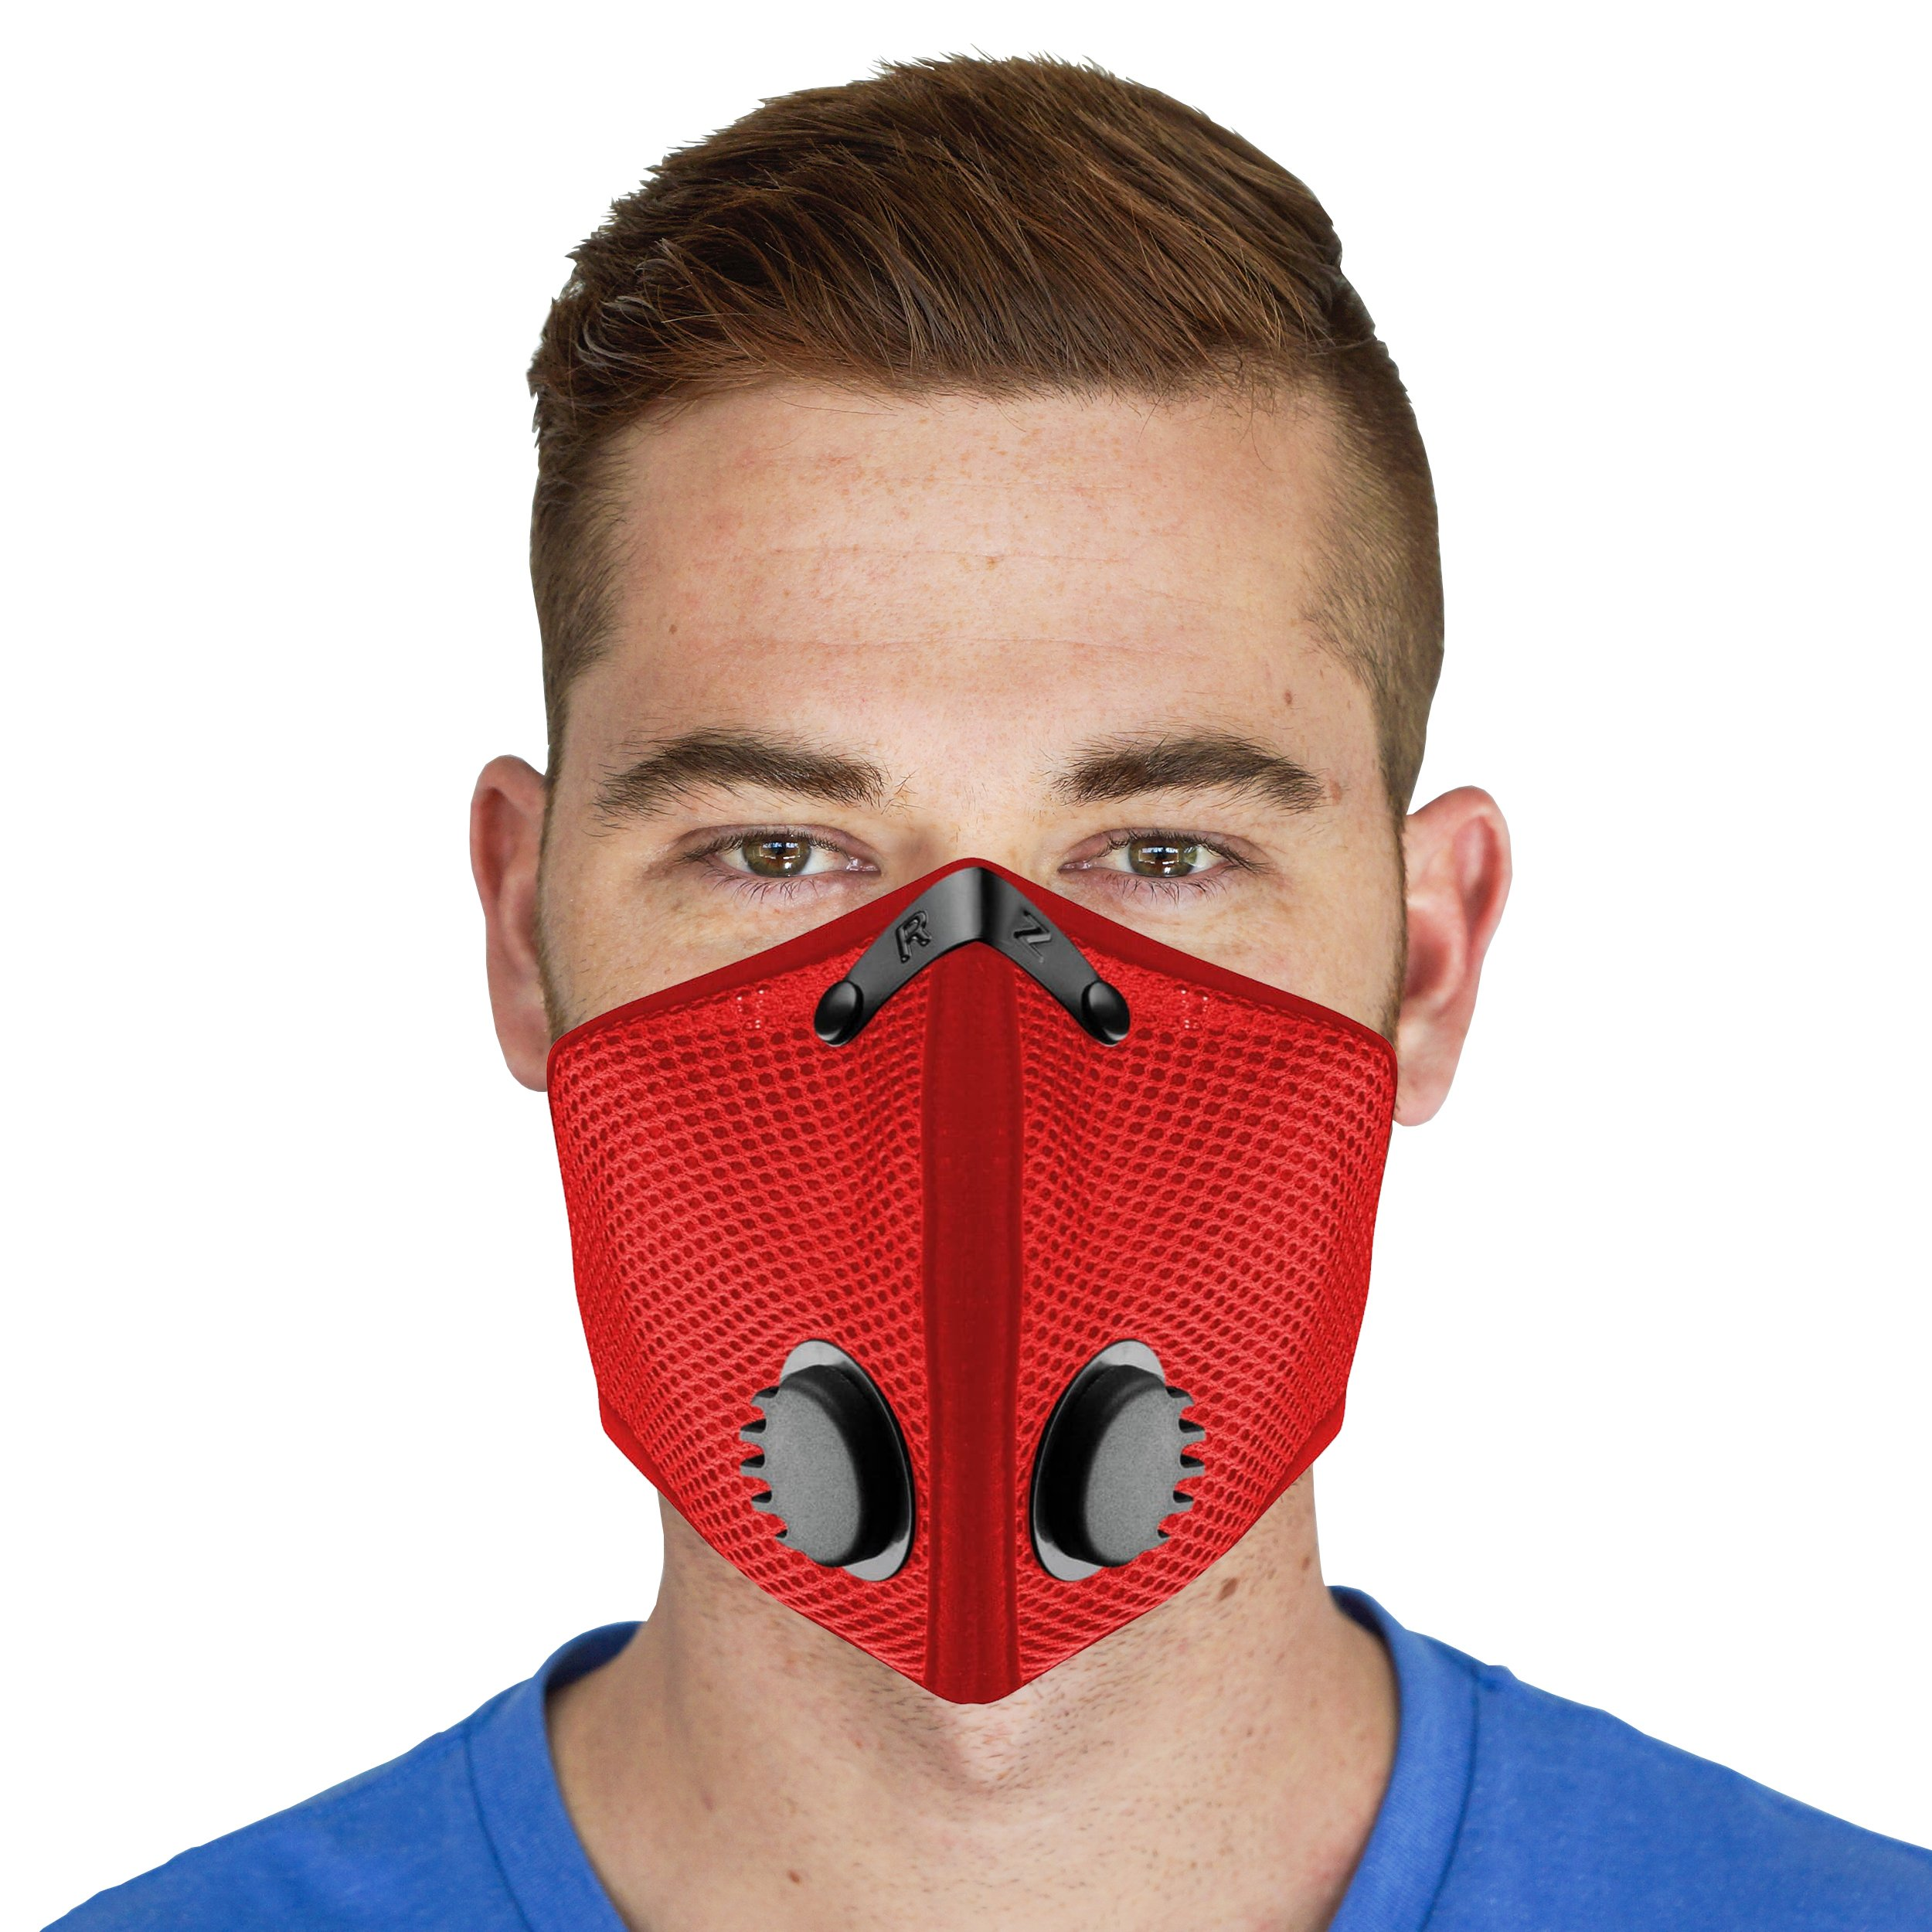 M2 Mesh Reusable Dust/Pollution RZ Mask - Red - Large by RZ Mask